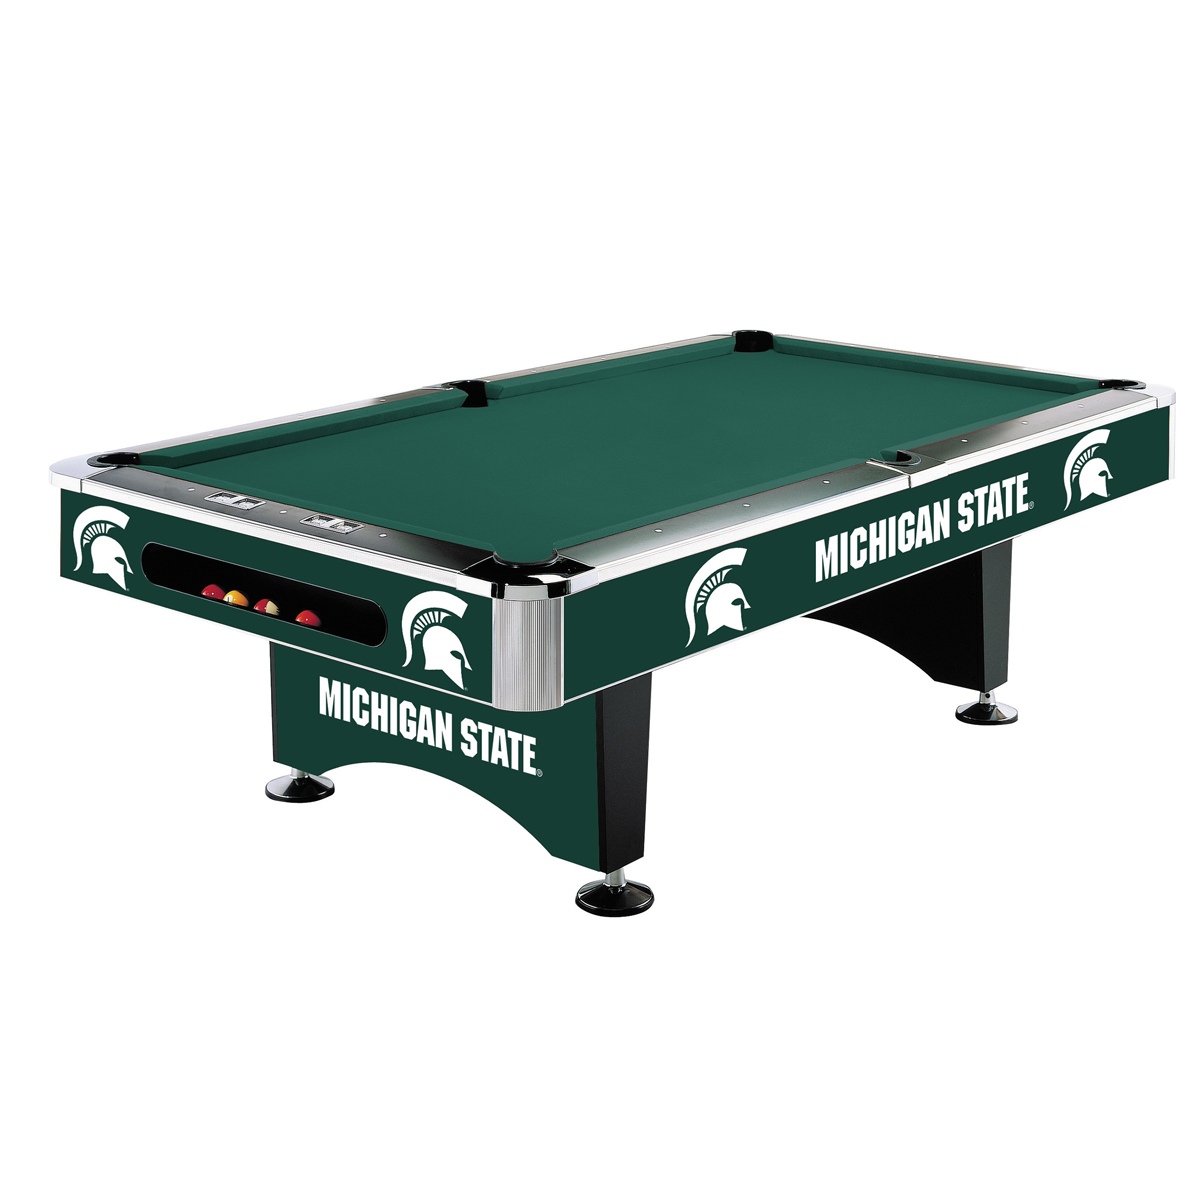 MICHIGAN STATE 8-FT. POOL TABLE